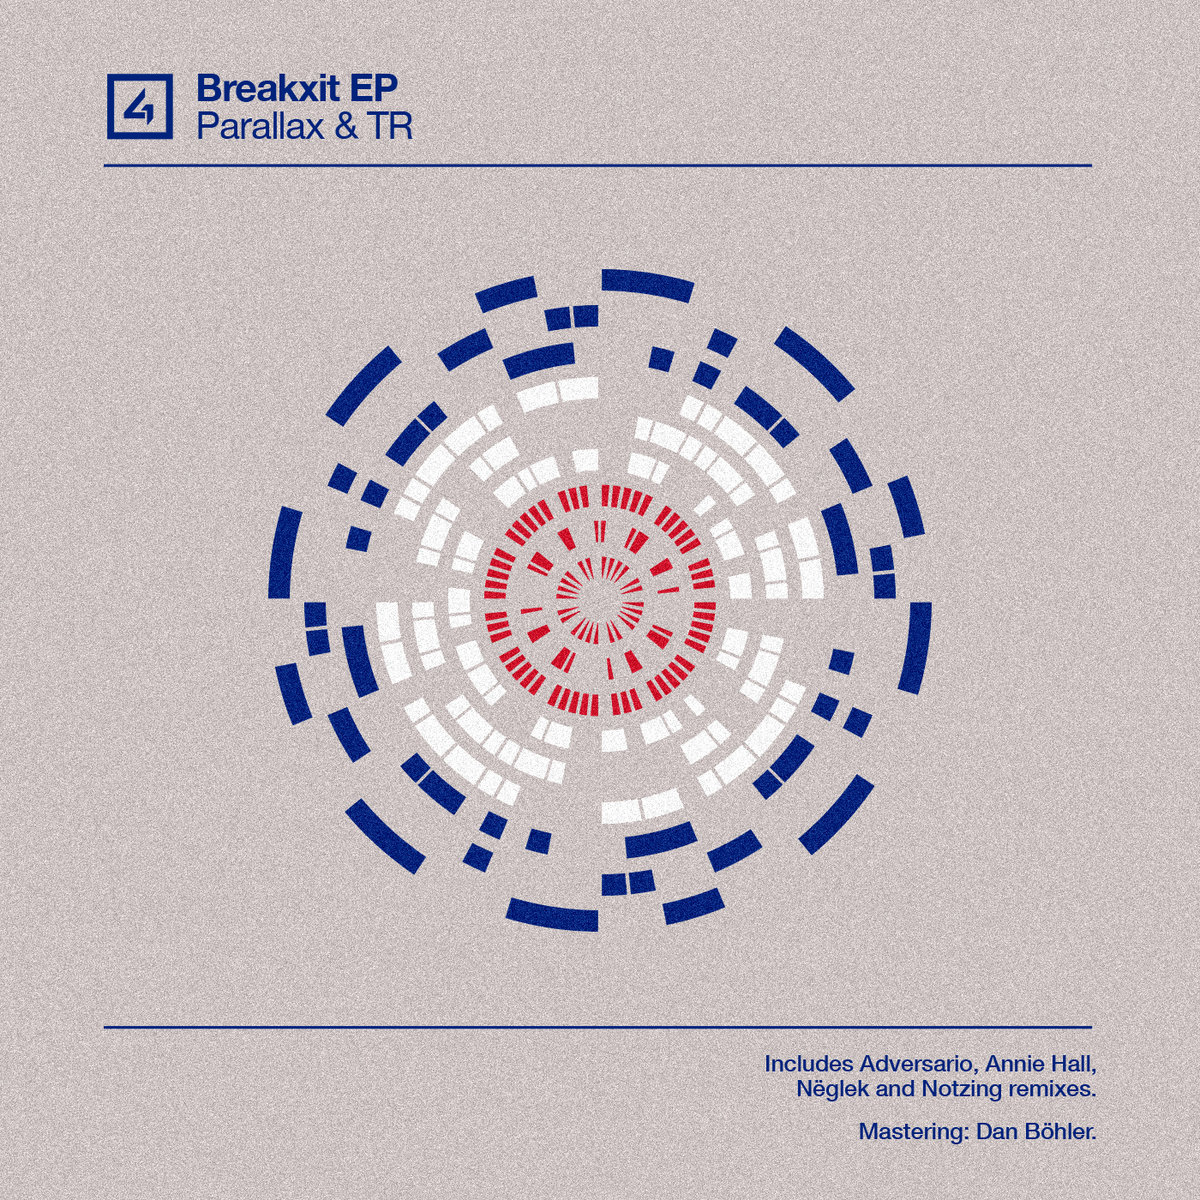 Parallax & TR - Breakxit EP (incl  Adversario, Annie Hall